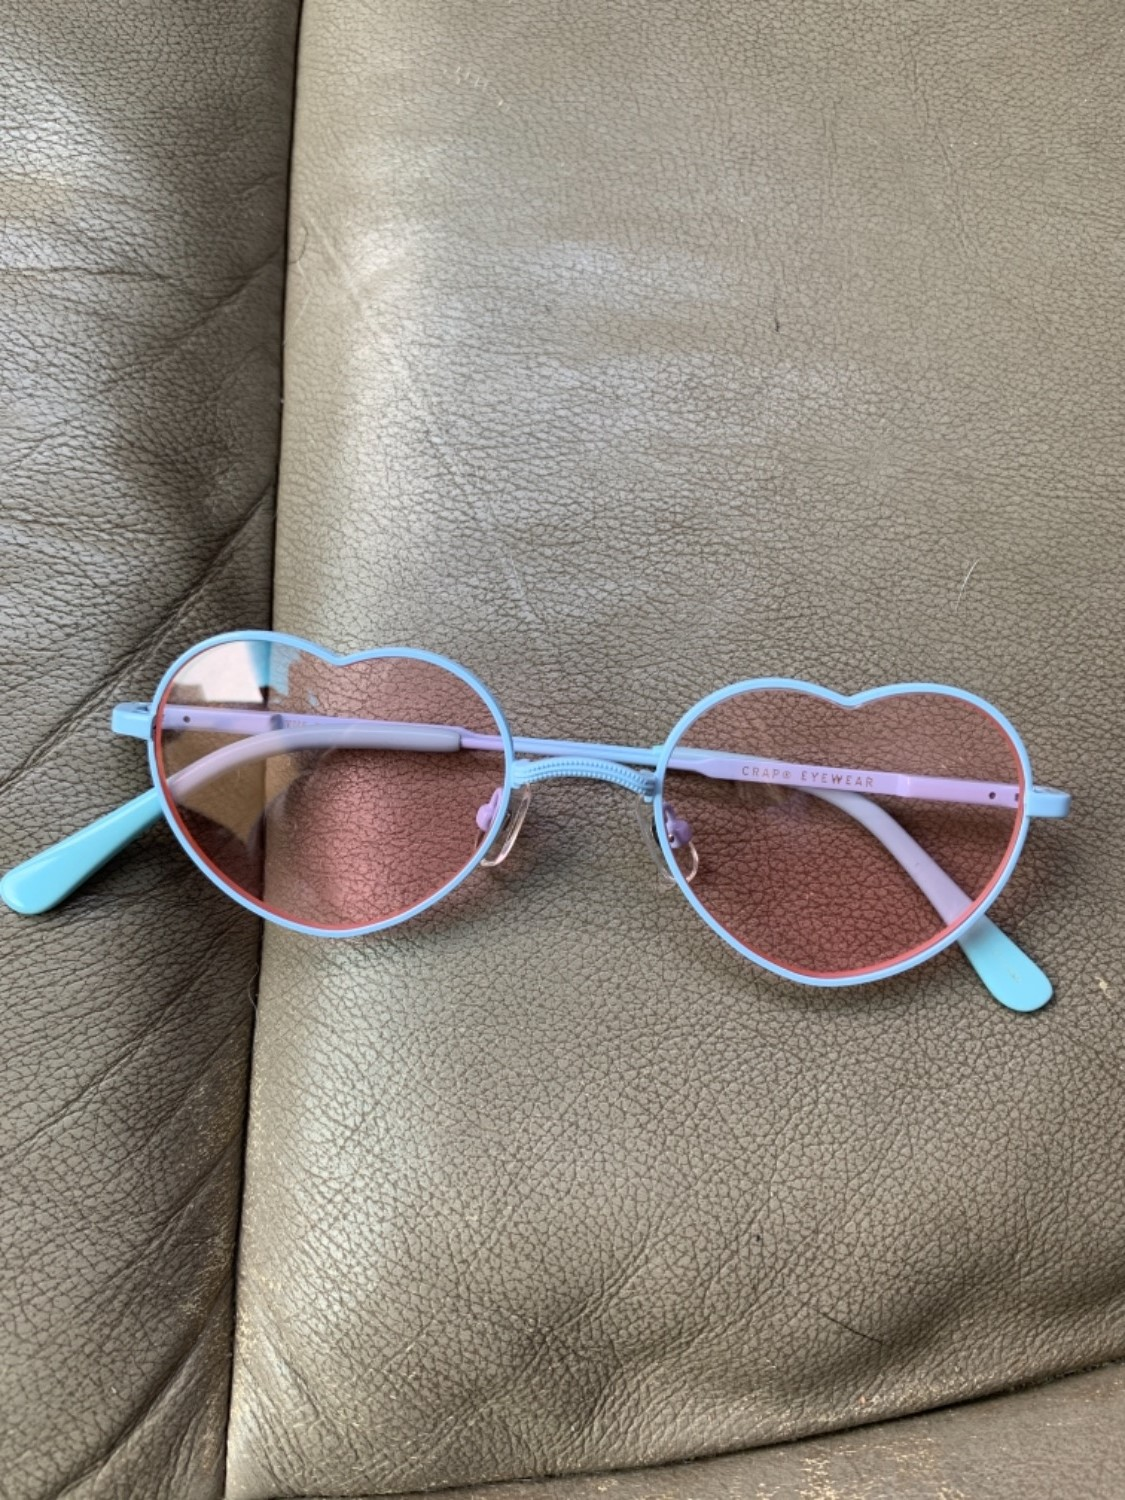 daedf96b96f These sunnies r super cute!